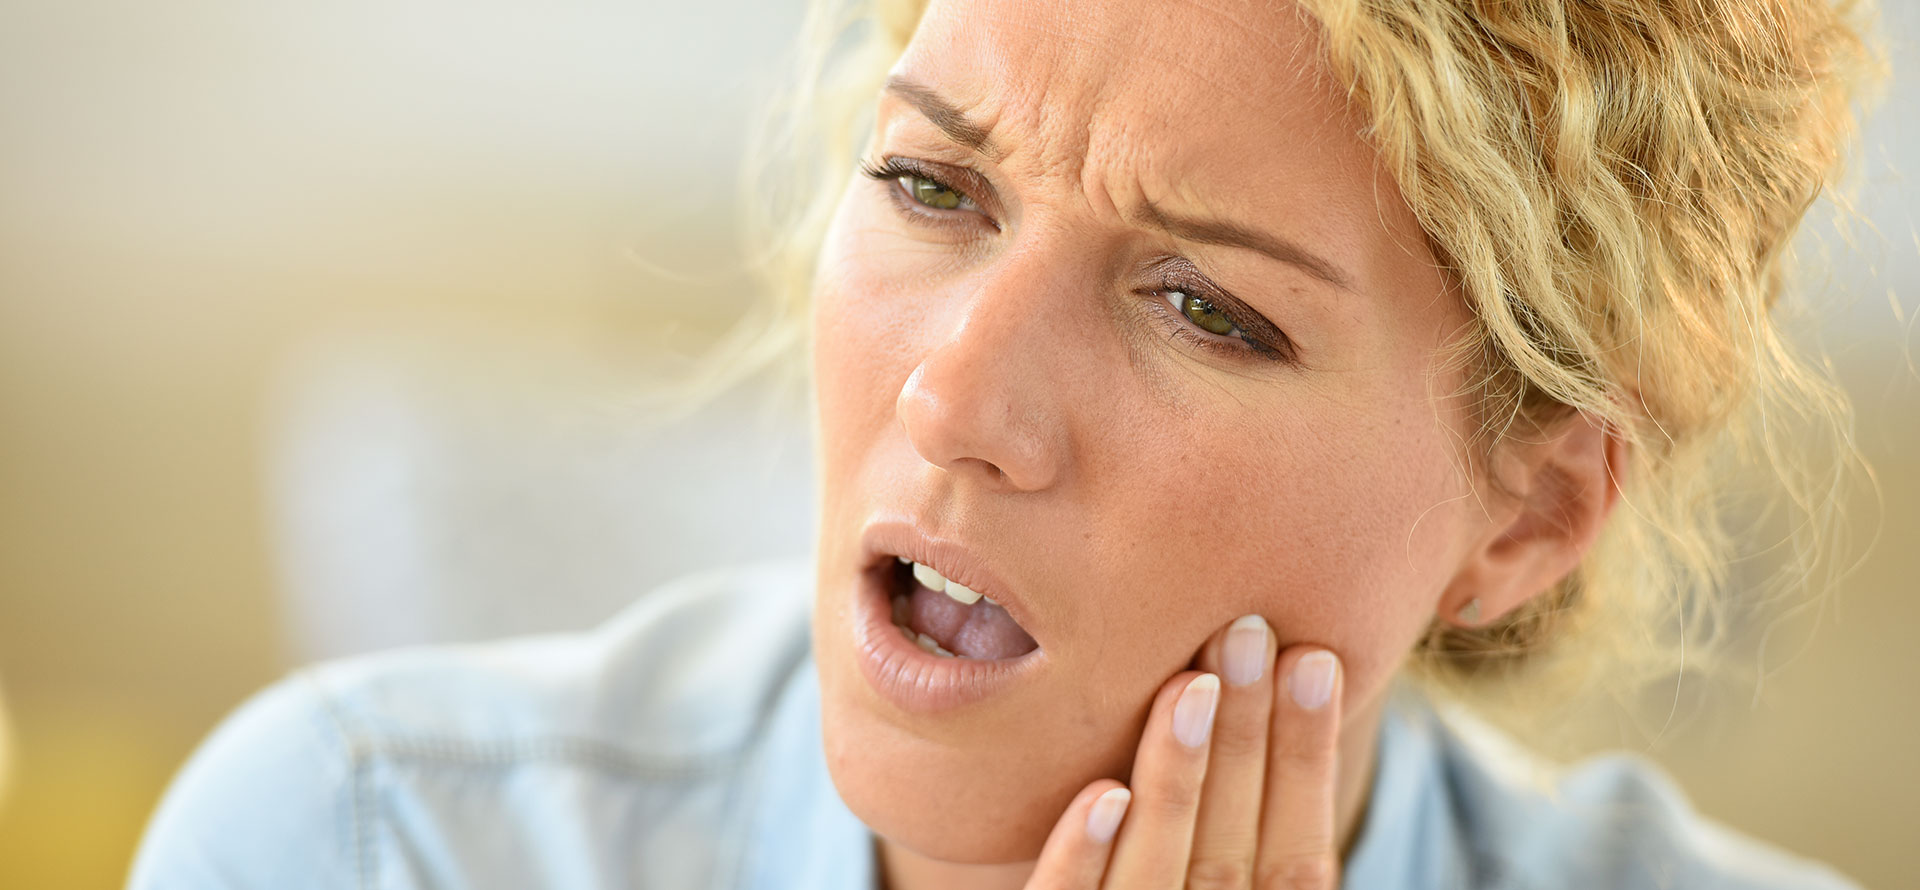 TMJ/TMD Therapy   Paramount Dental   North Calgary   Family and General Dentist